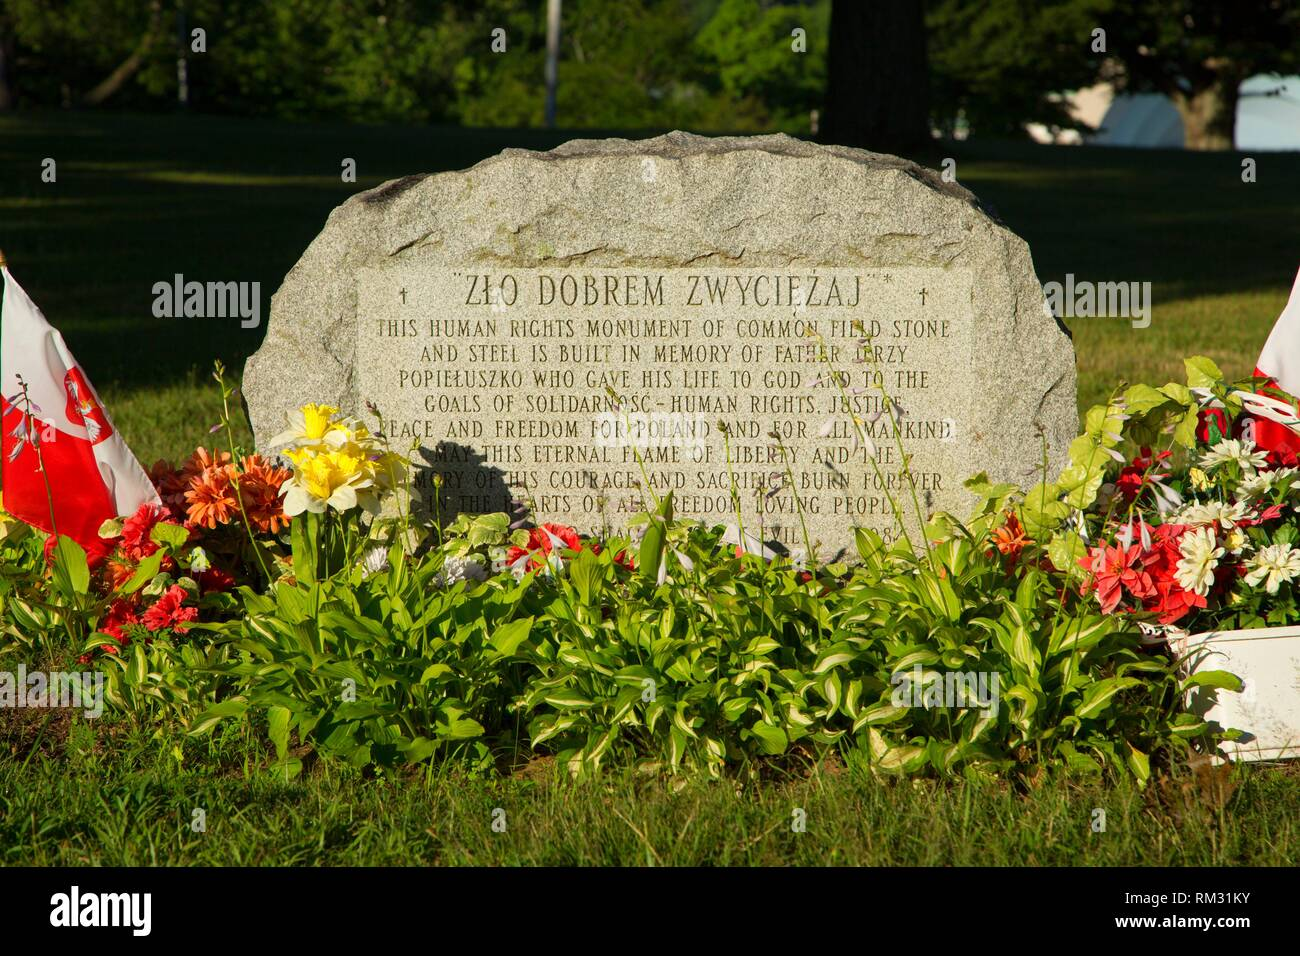 Human Rights Monument, Walnut Hill Park, New Britain, Connecticut. - Stock Image